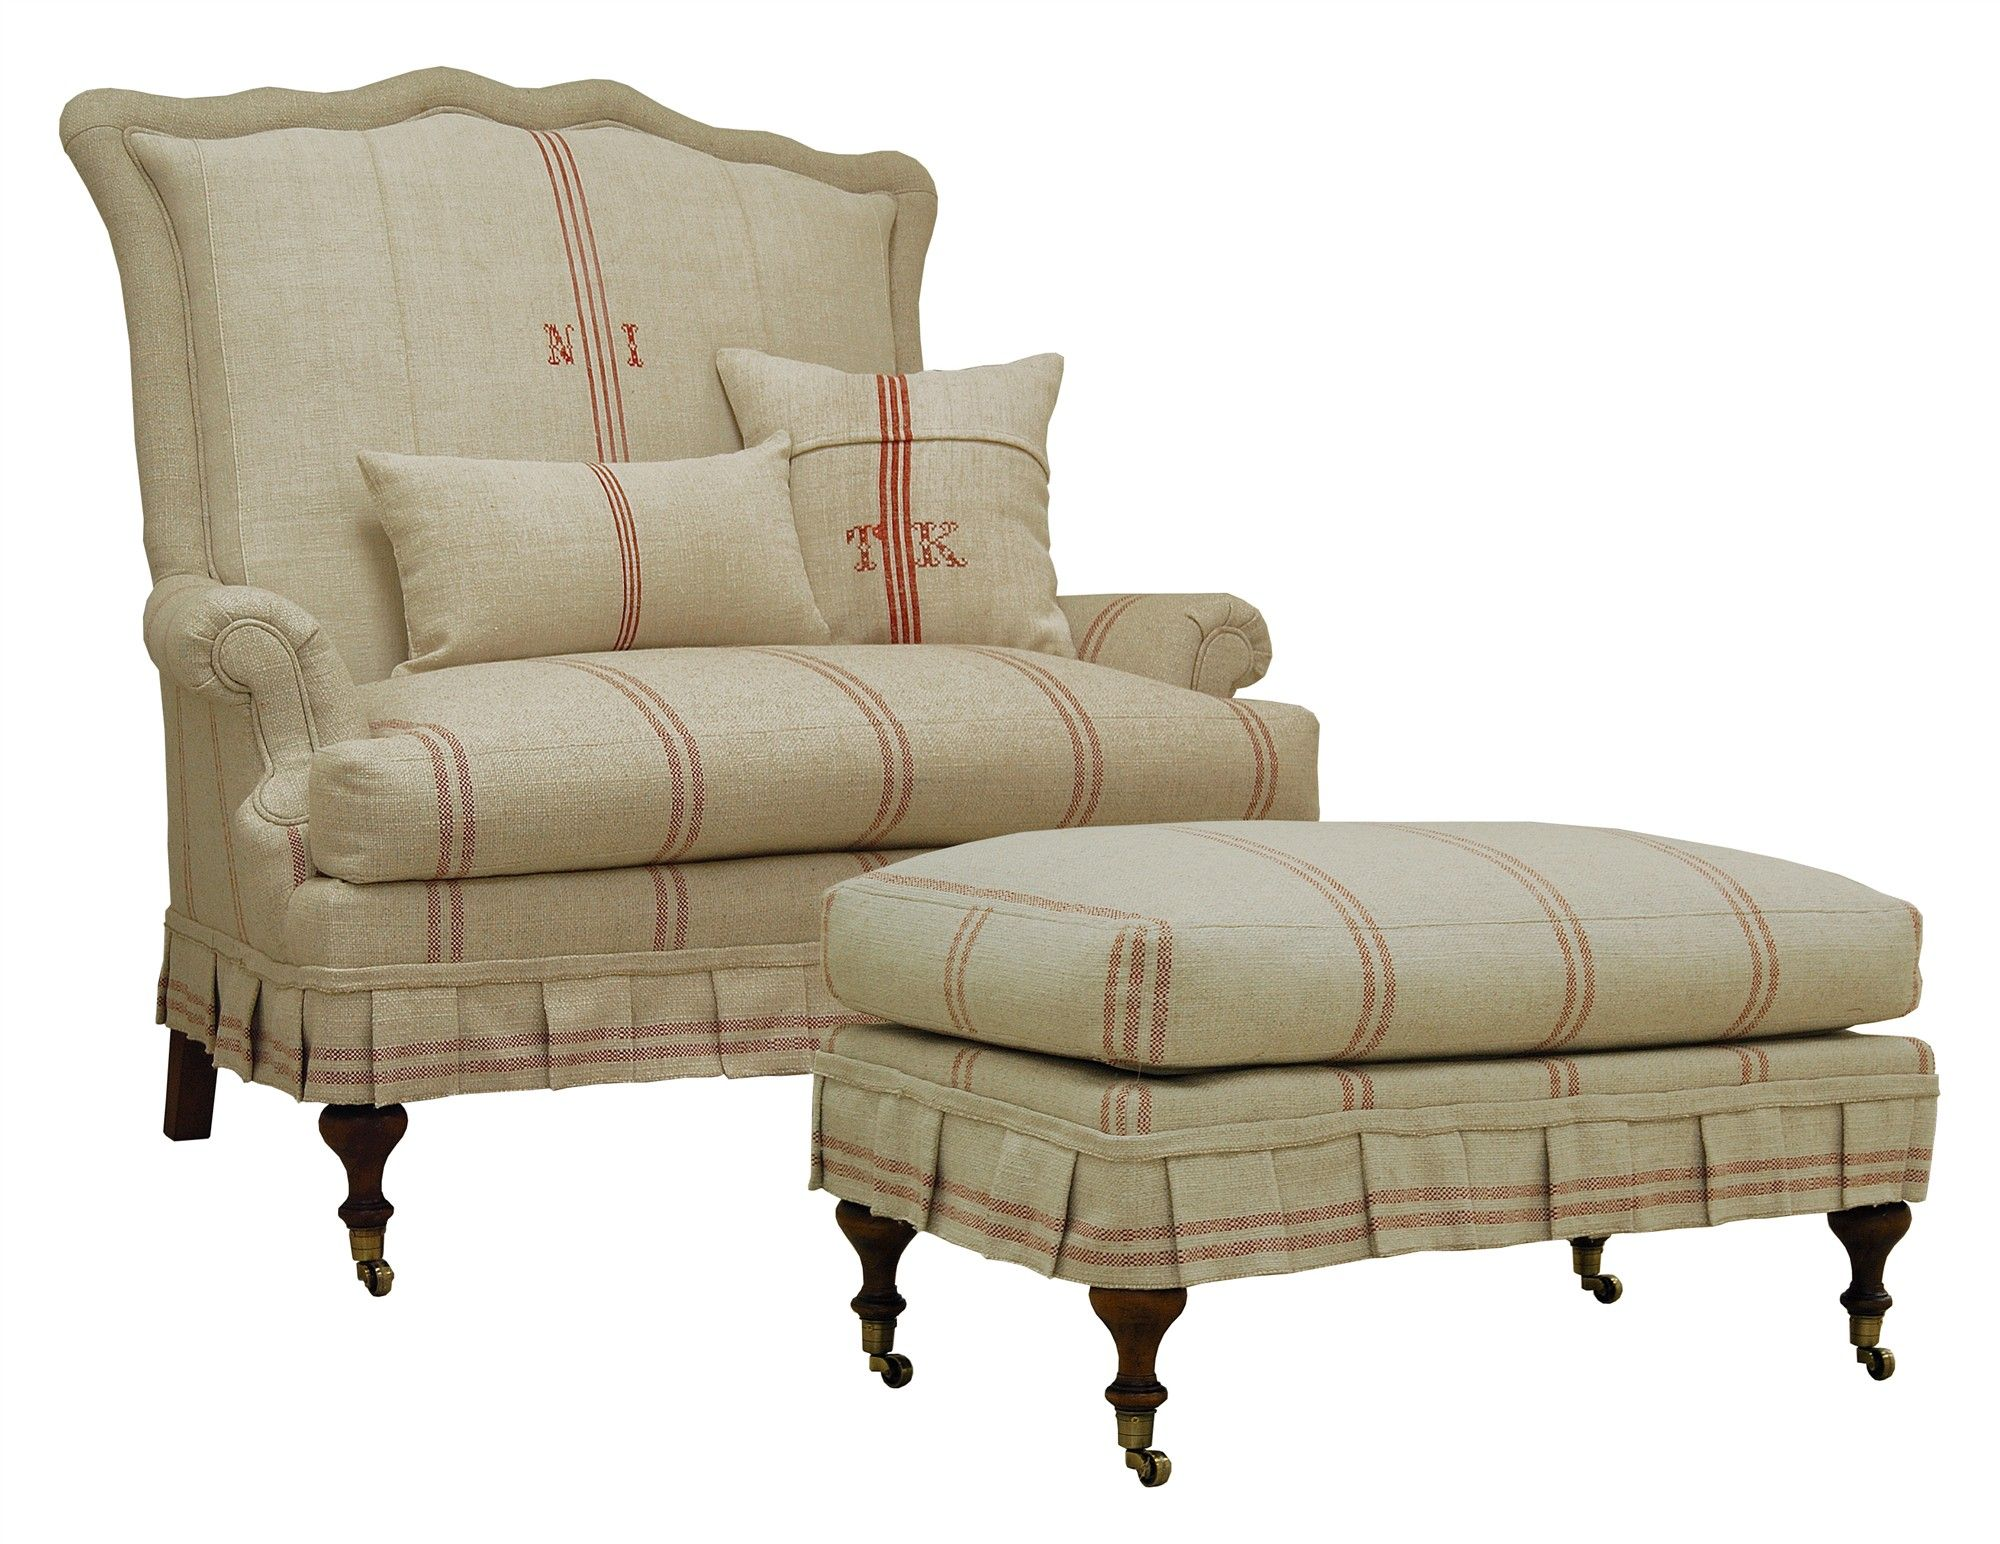 Jeffrey Zimmerman Furniture | The Jeff Zimmerman Collection Lambert Tight  Back Settee W Ottoman (kcf